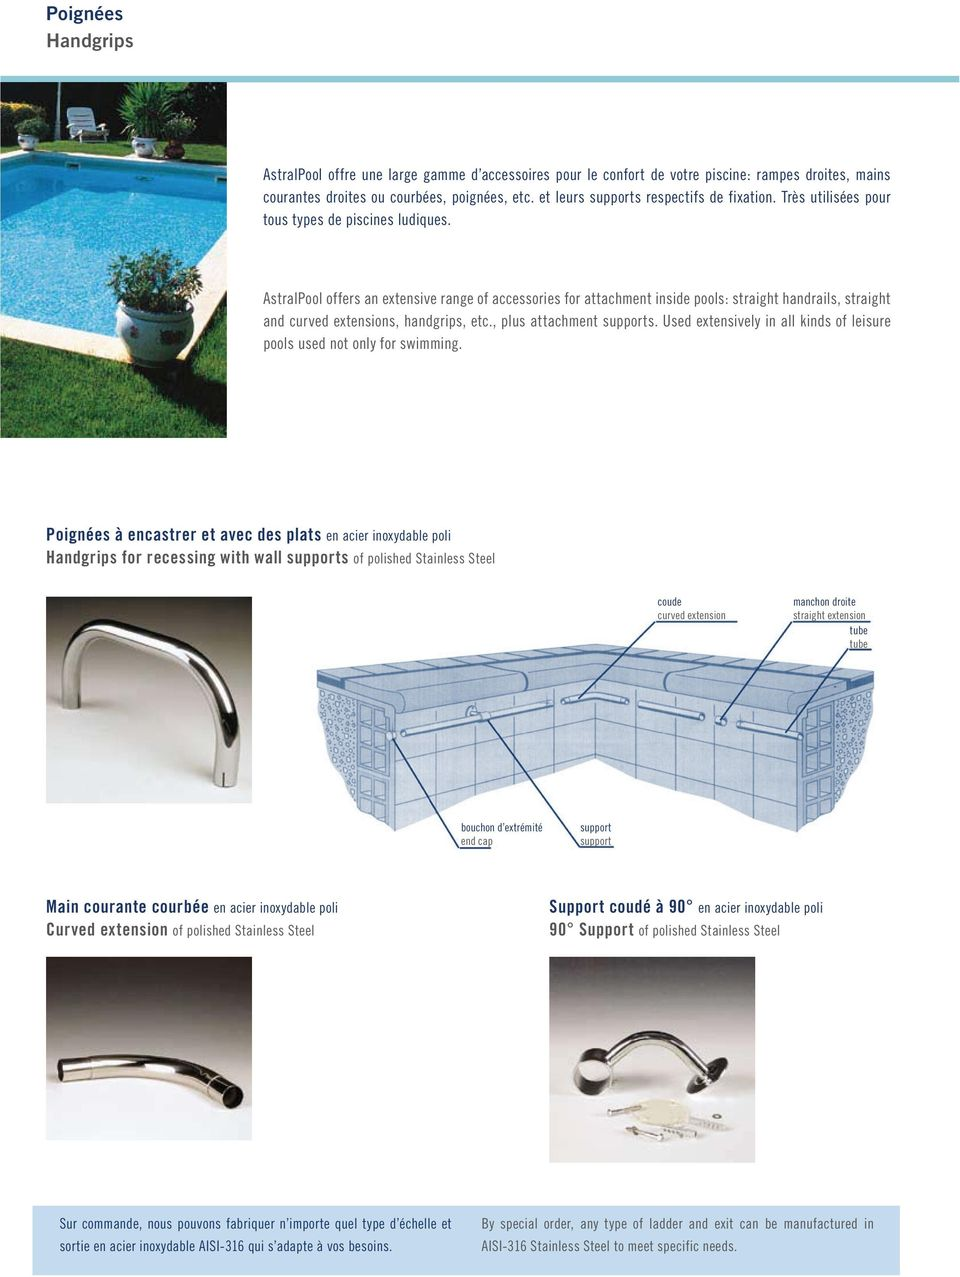 AstralPool offers an extensive range of accessories for attachment inside pools: straight handrails, straight and curved extensions, handgrips, etc., plus attachment supports.